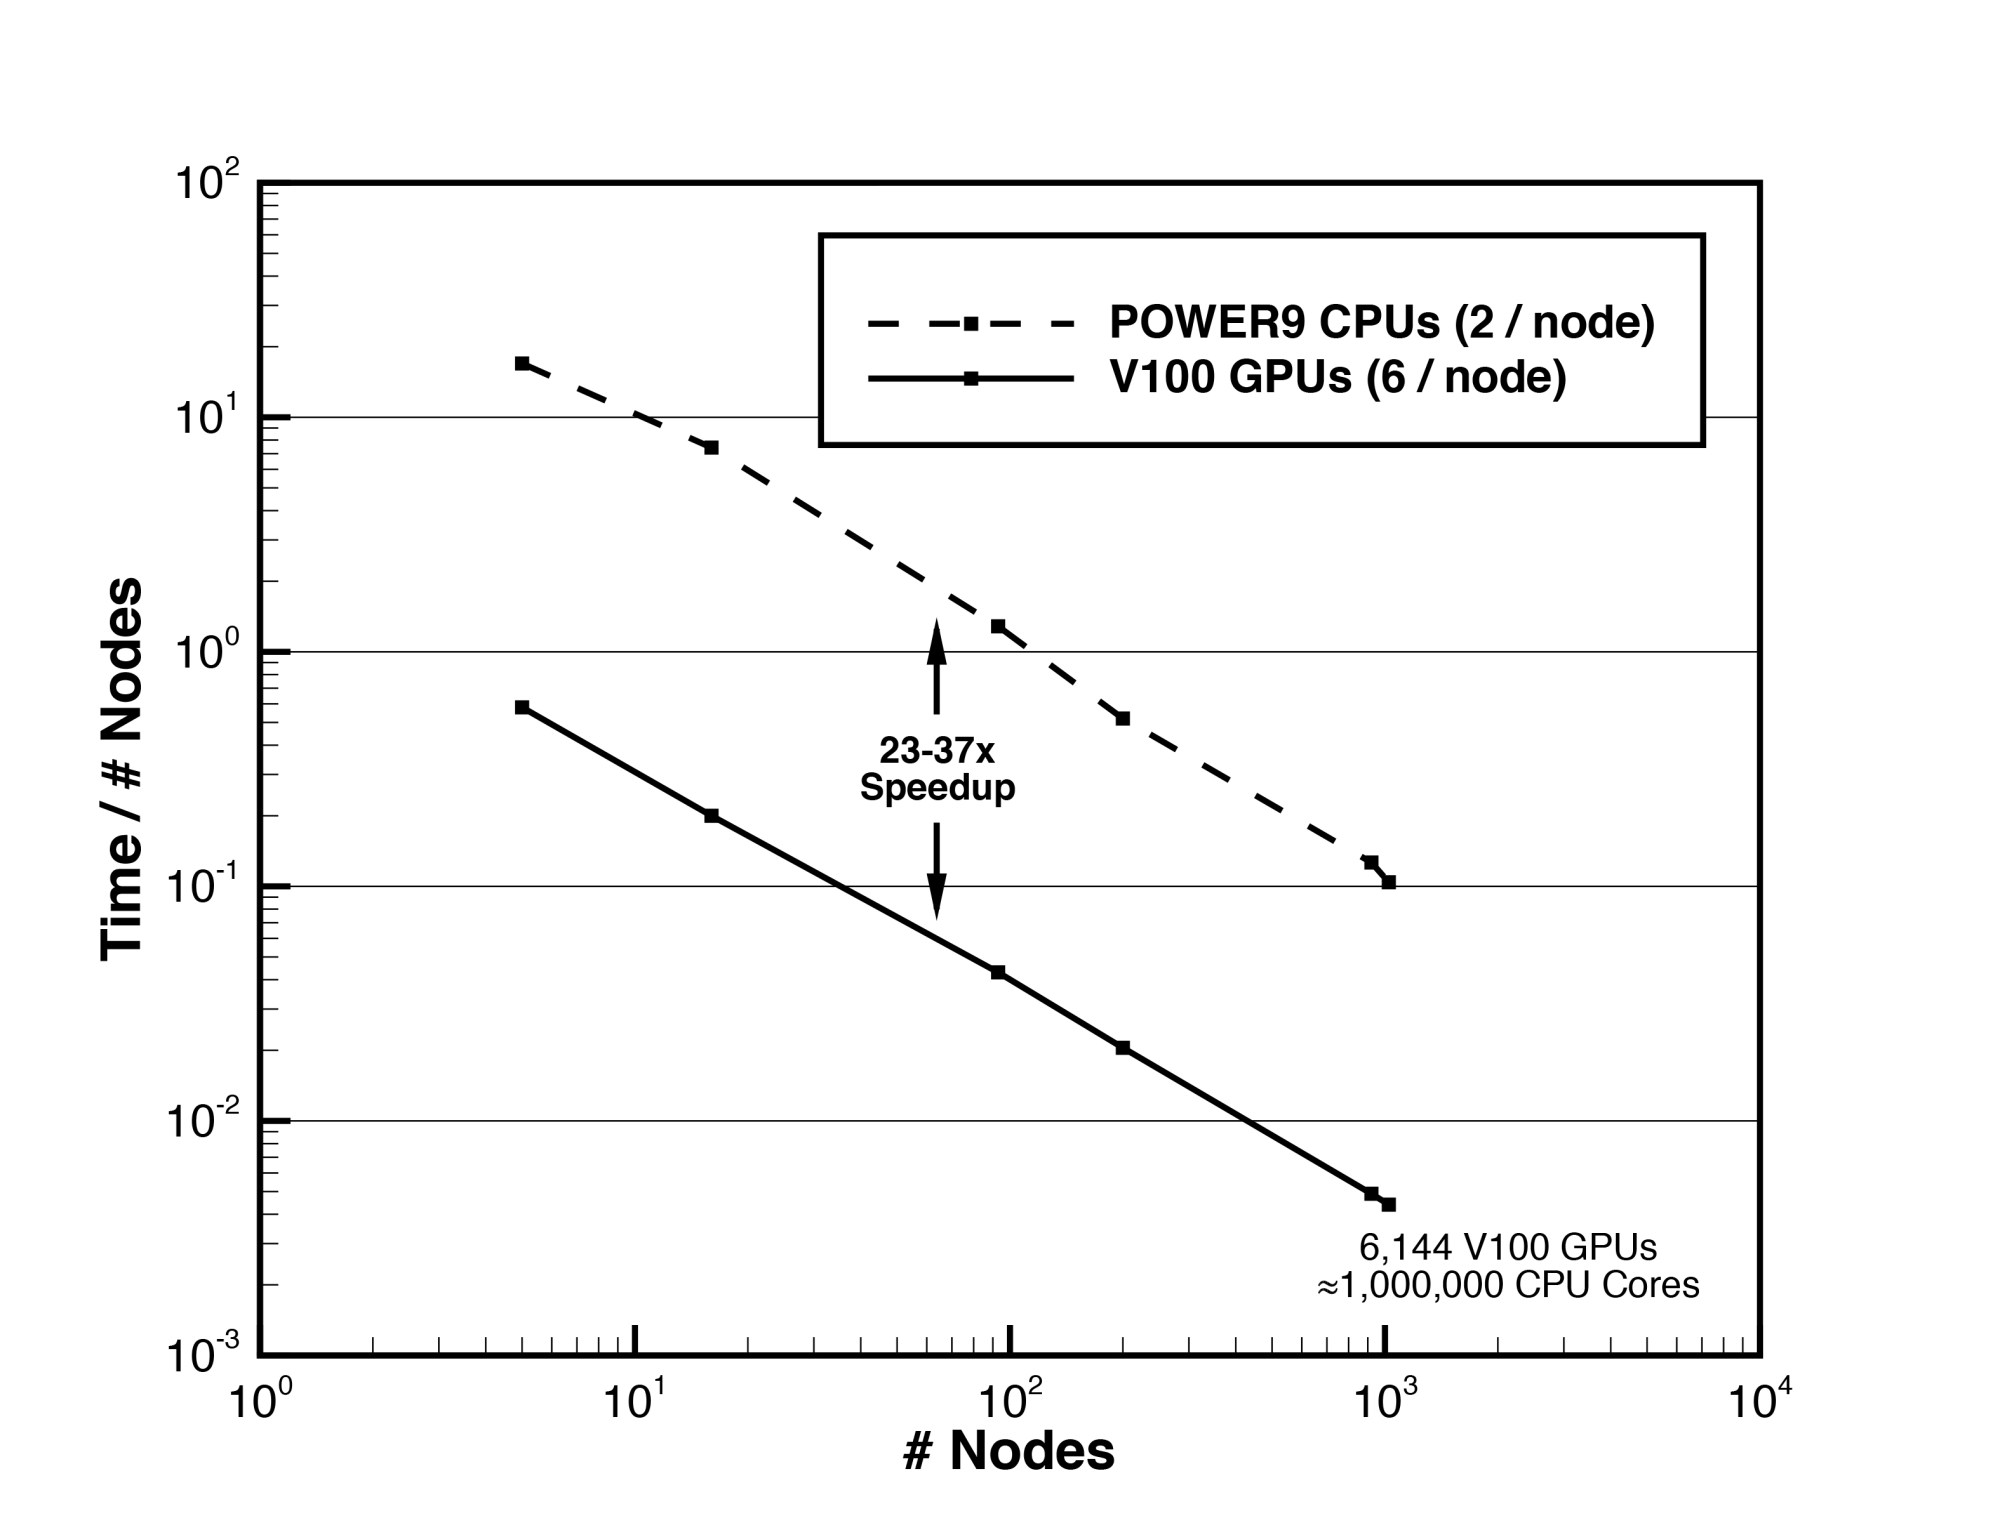 hight resolution of nasa s pleiades and electra supercomputers were used extensively for node level xeon based optimization and profiling exercises